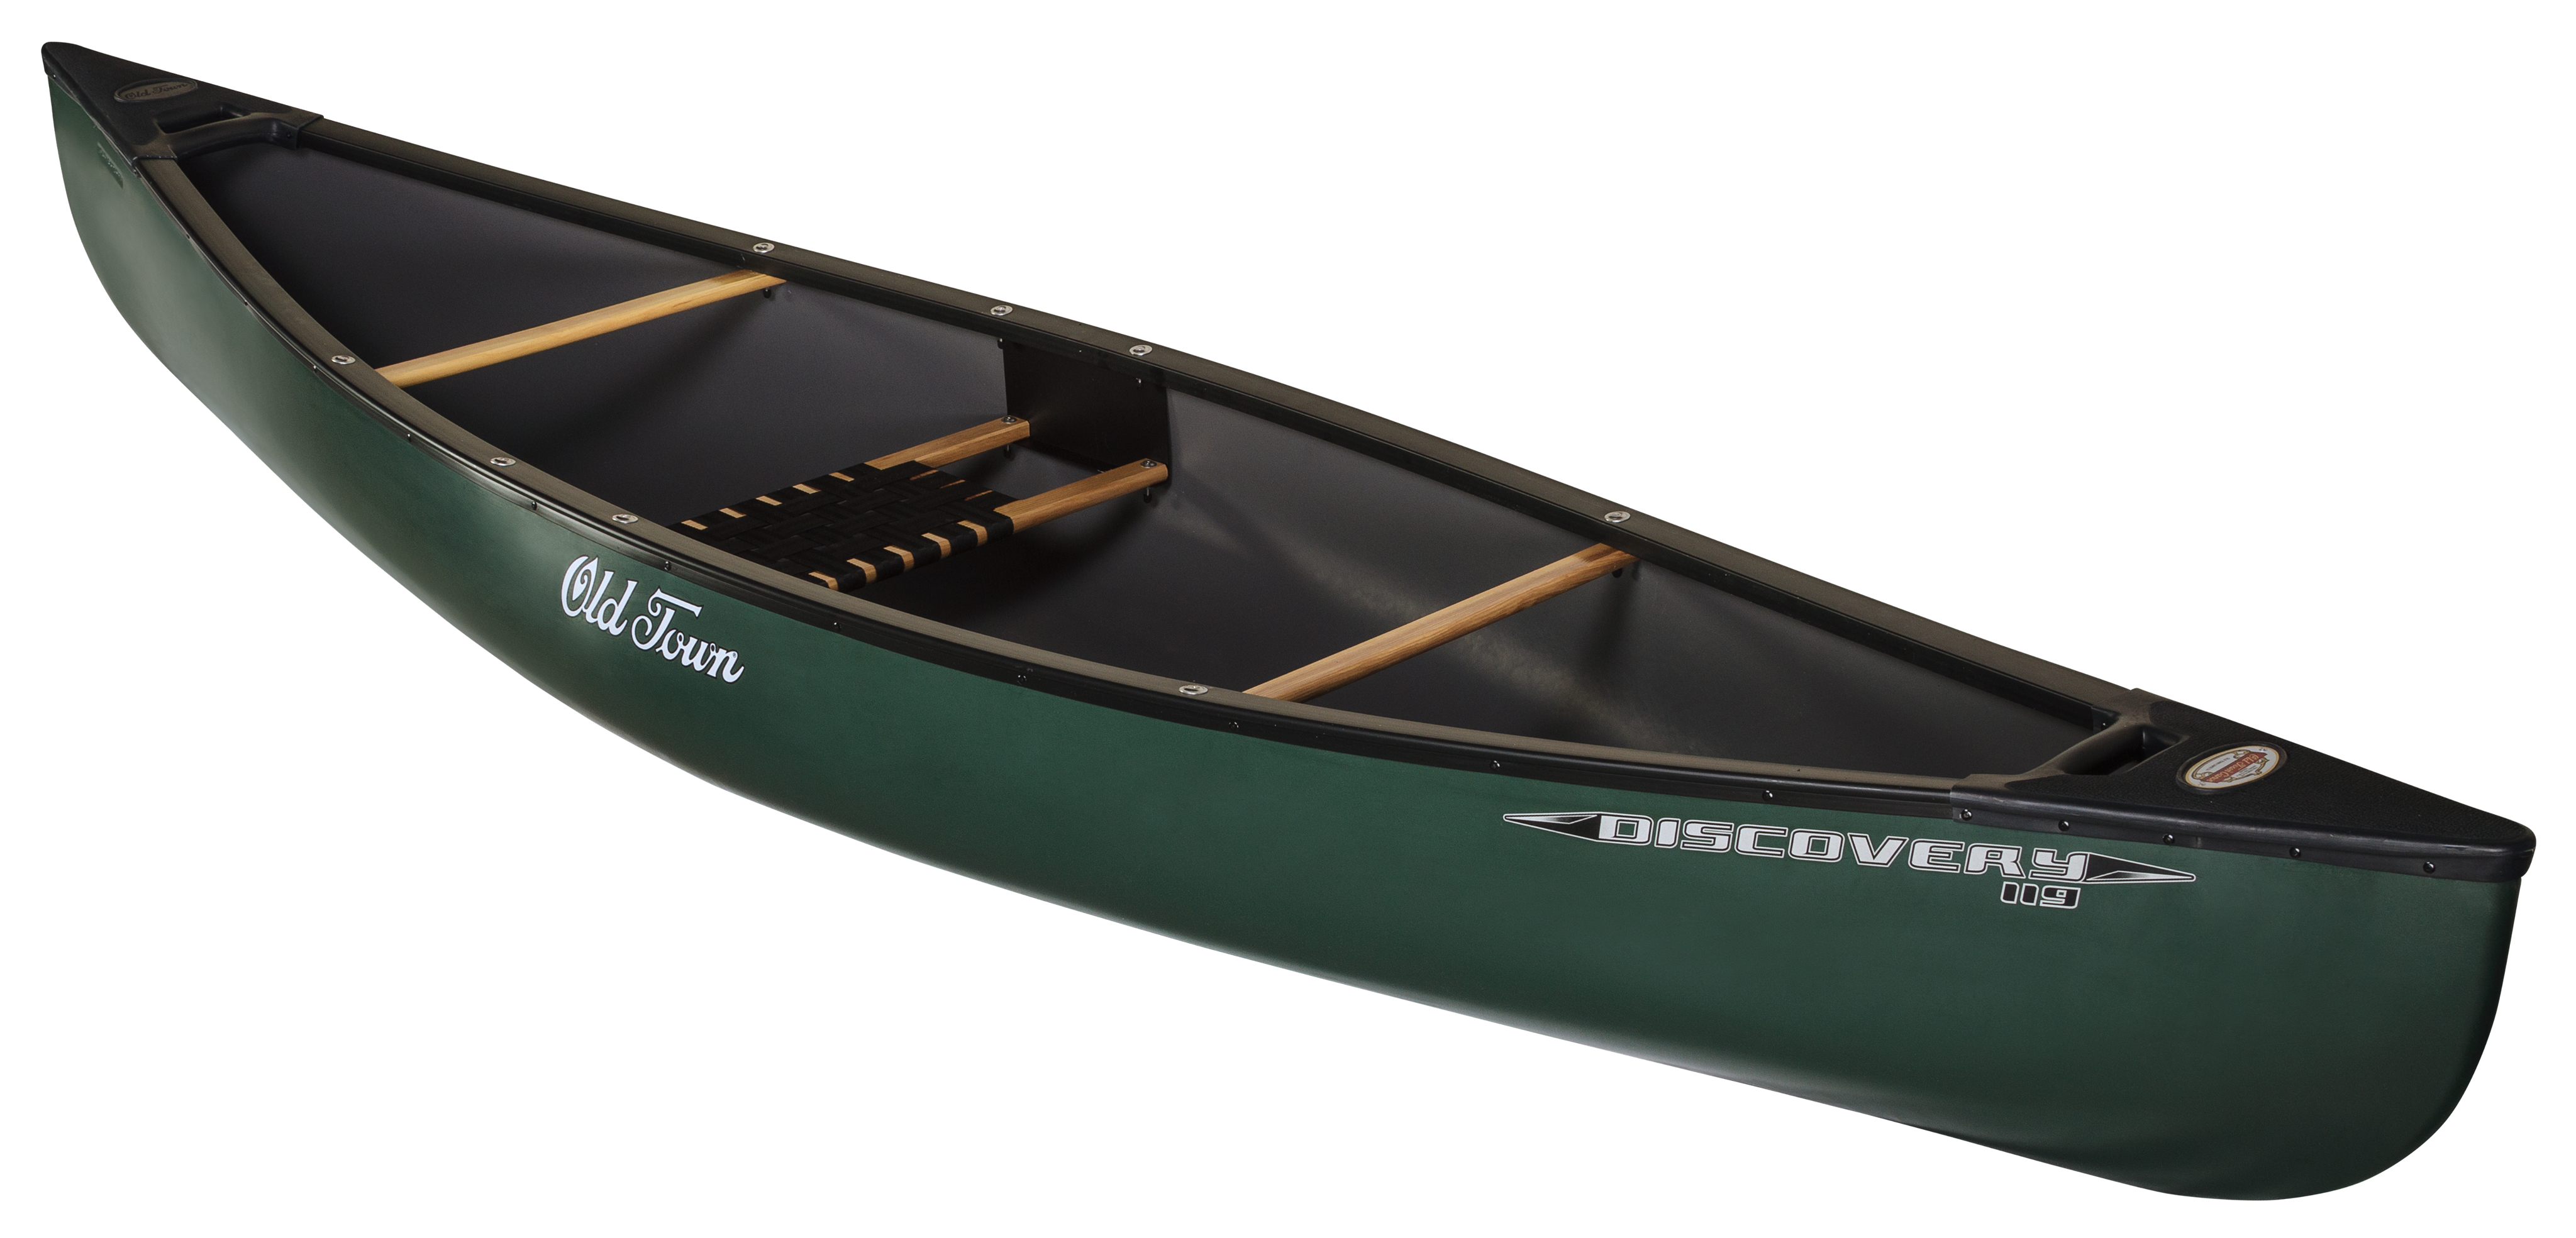 Drawing at getdrawings com. Kayak clipart canoe trip